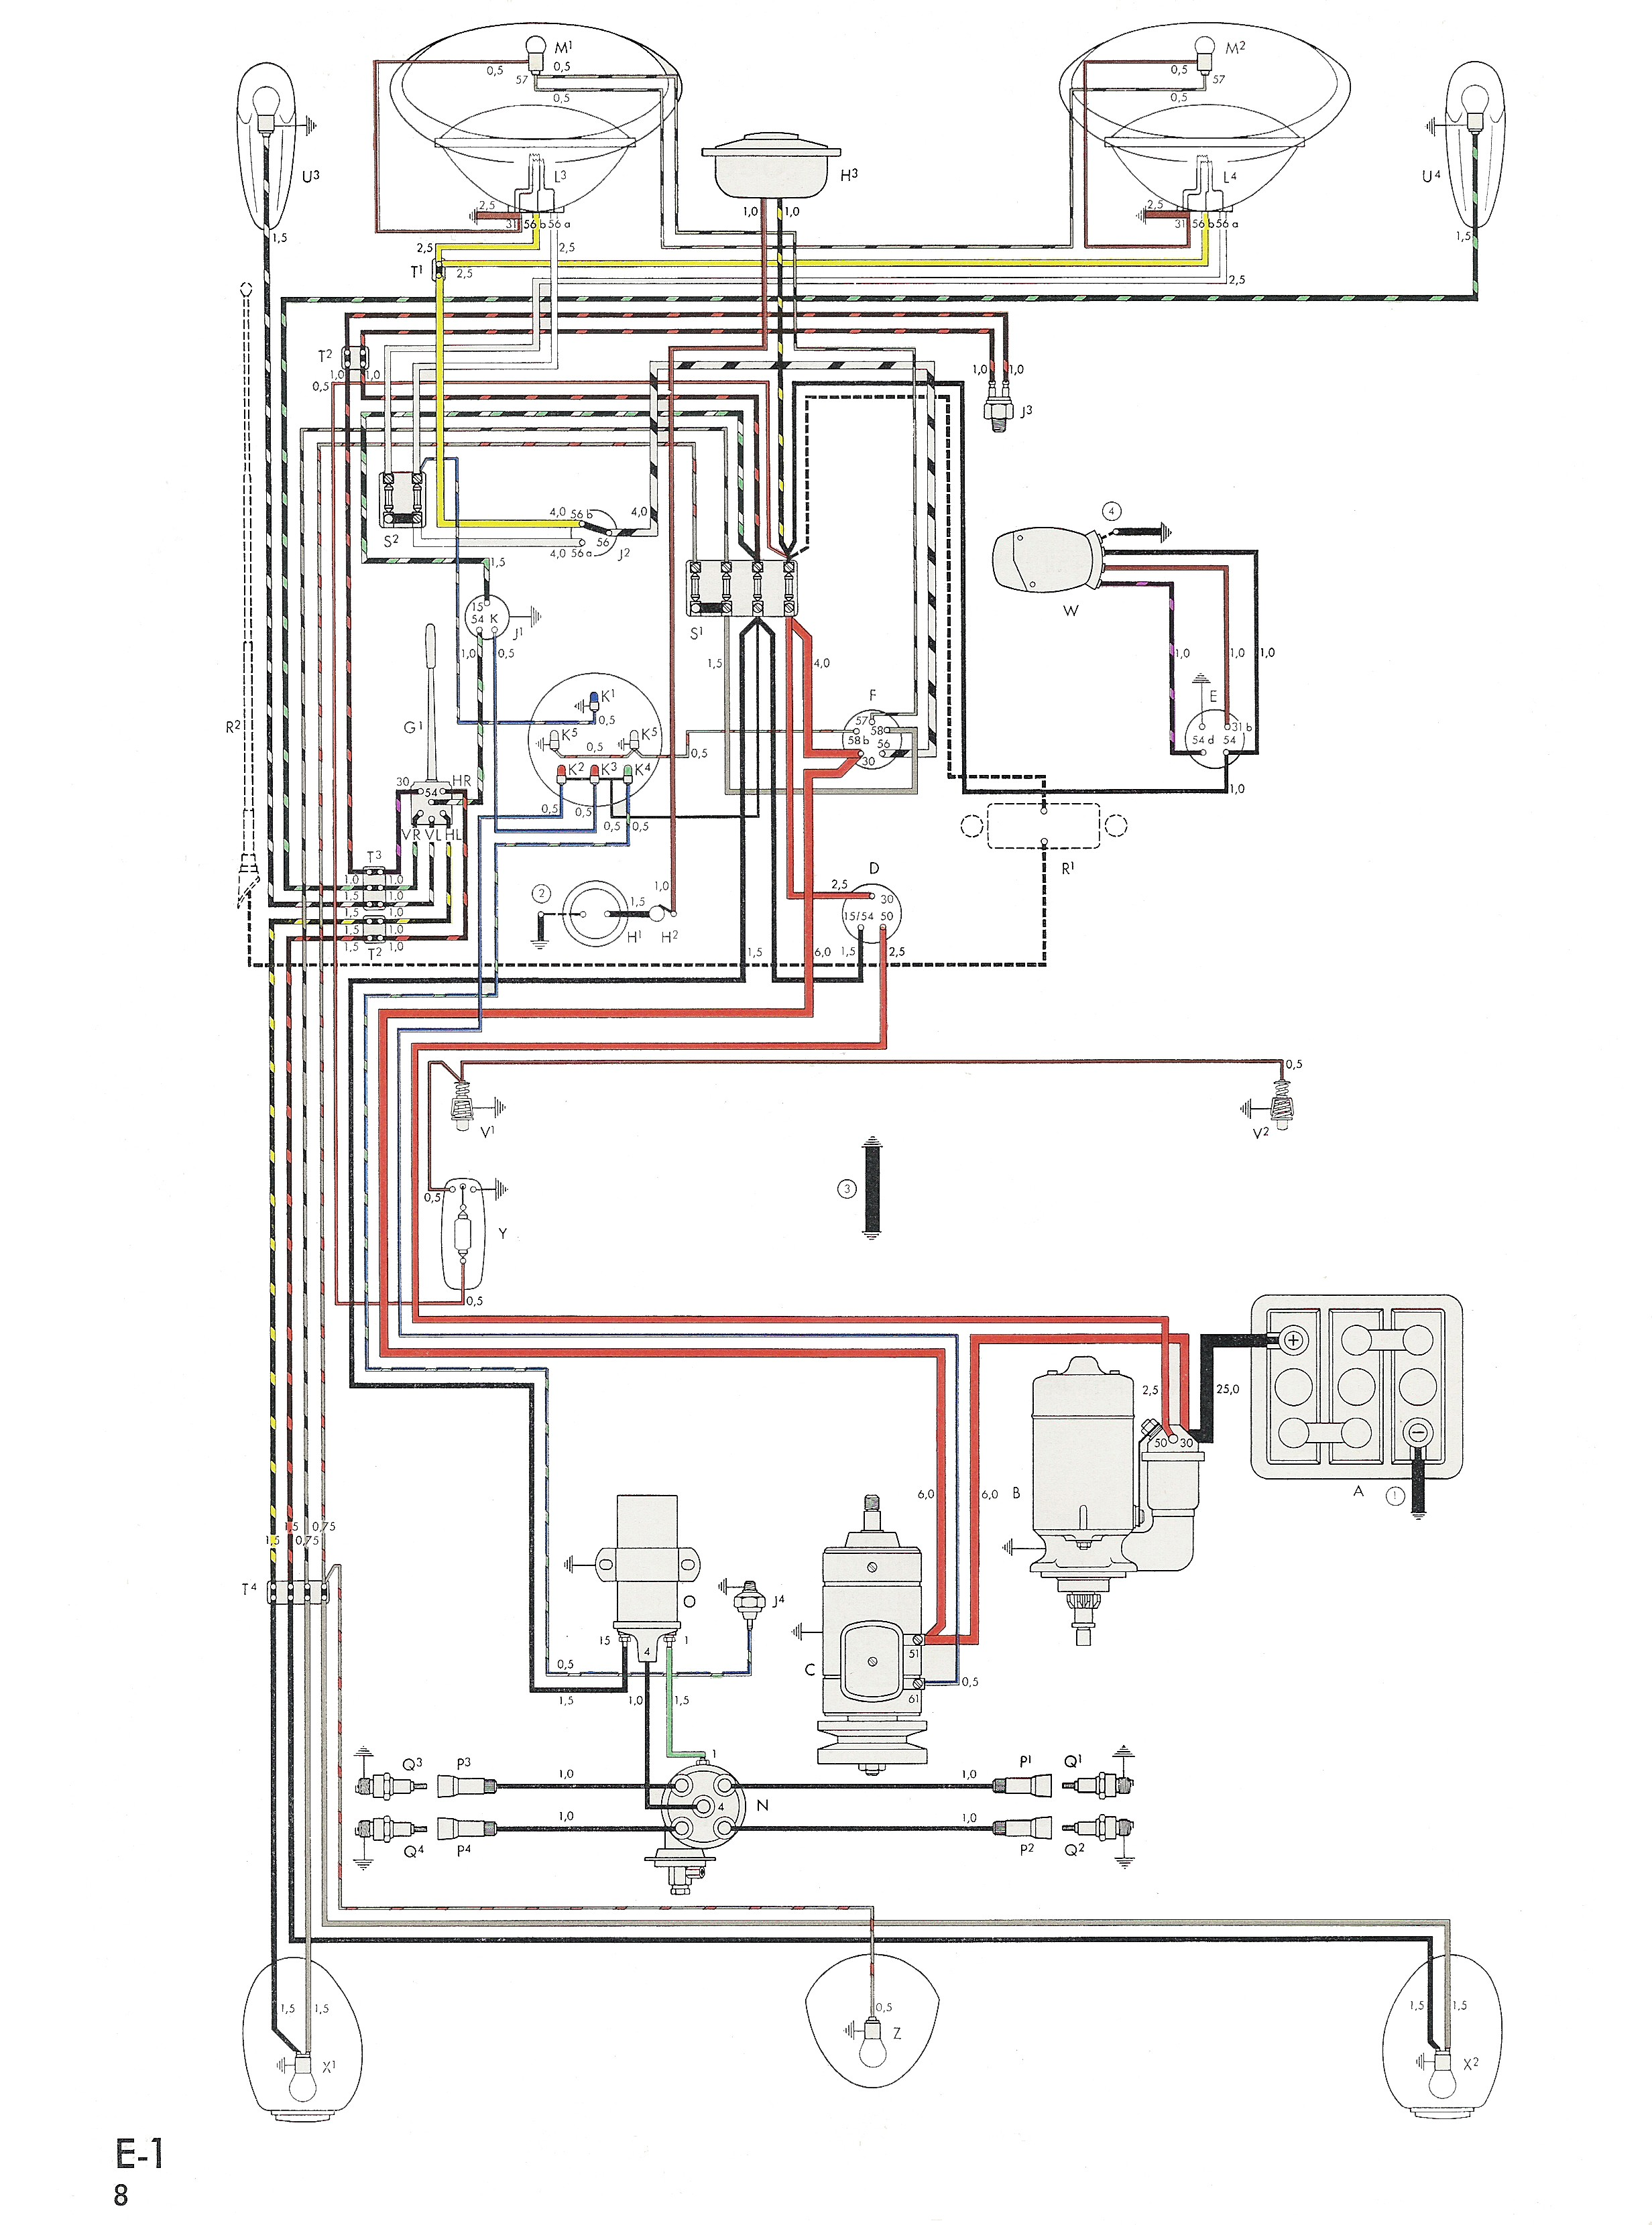 74 vw engine diagram data wiring diagrams u2022 rh autoglas schwelm de VW Beetle Engine Exploded View Type 1 VW Engine Schematic